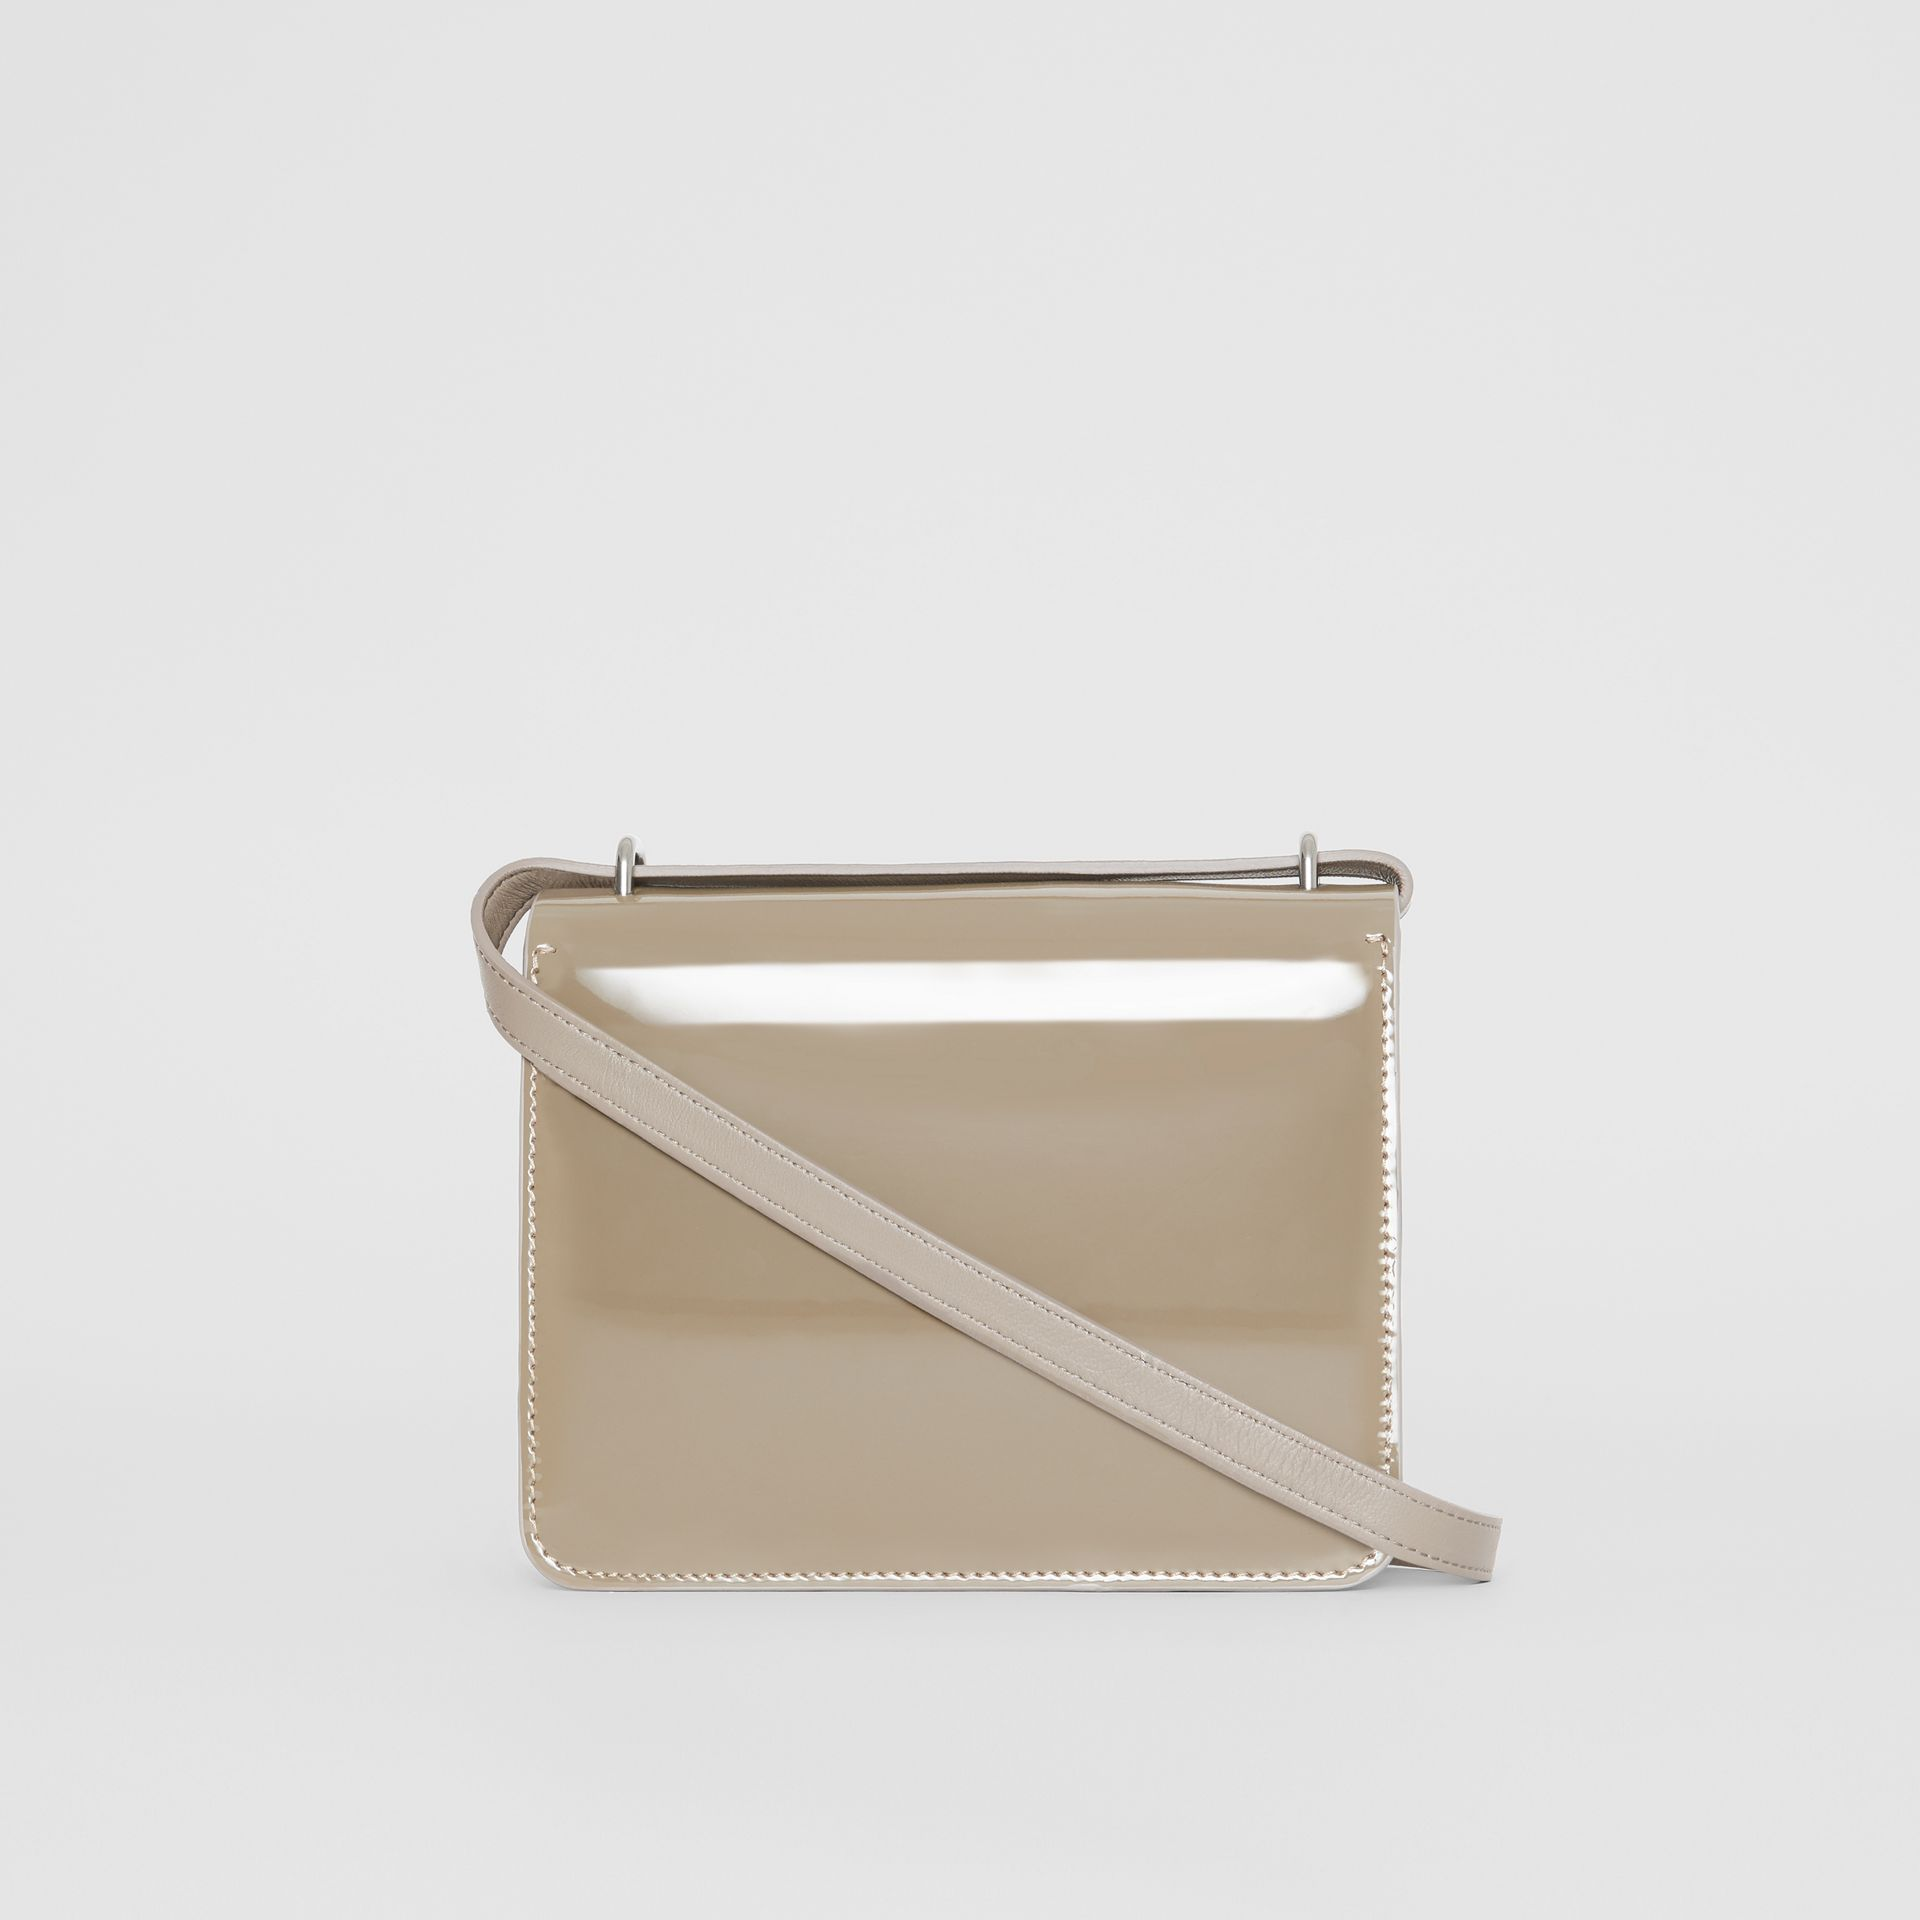 The Small Patent Leather D-ring Bag in Taupe Grey - Women | Burberry - gallery image 7